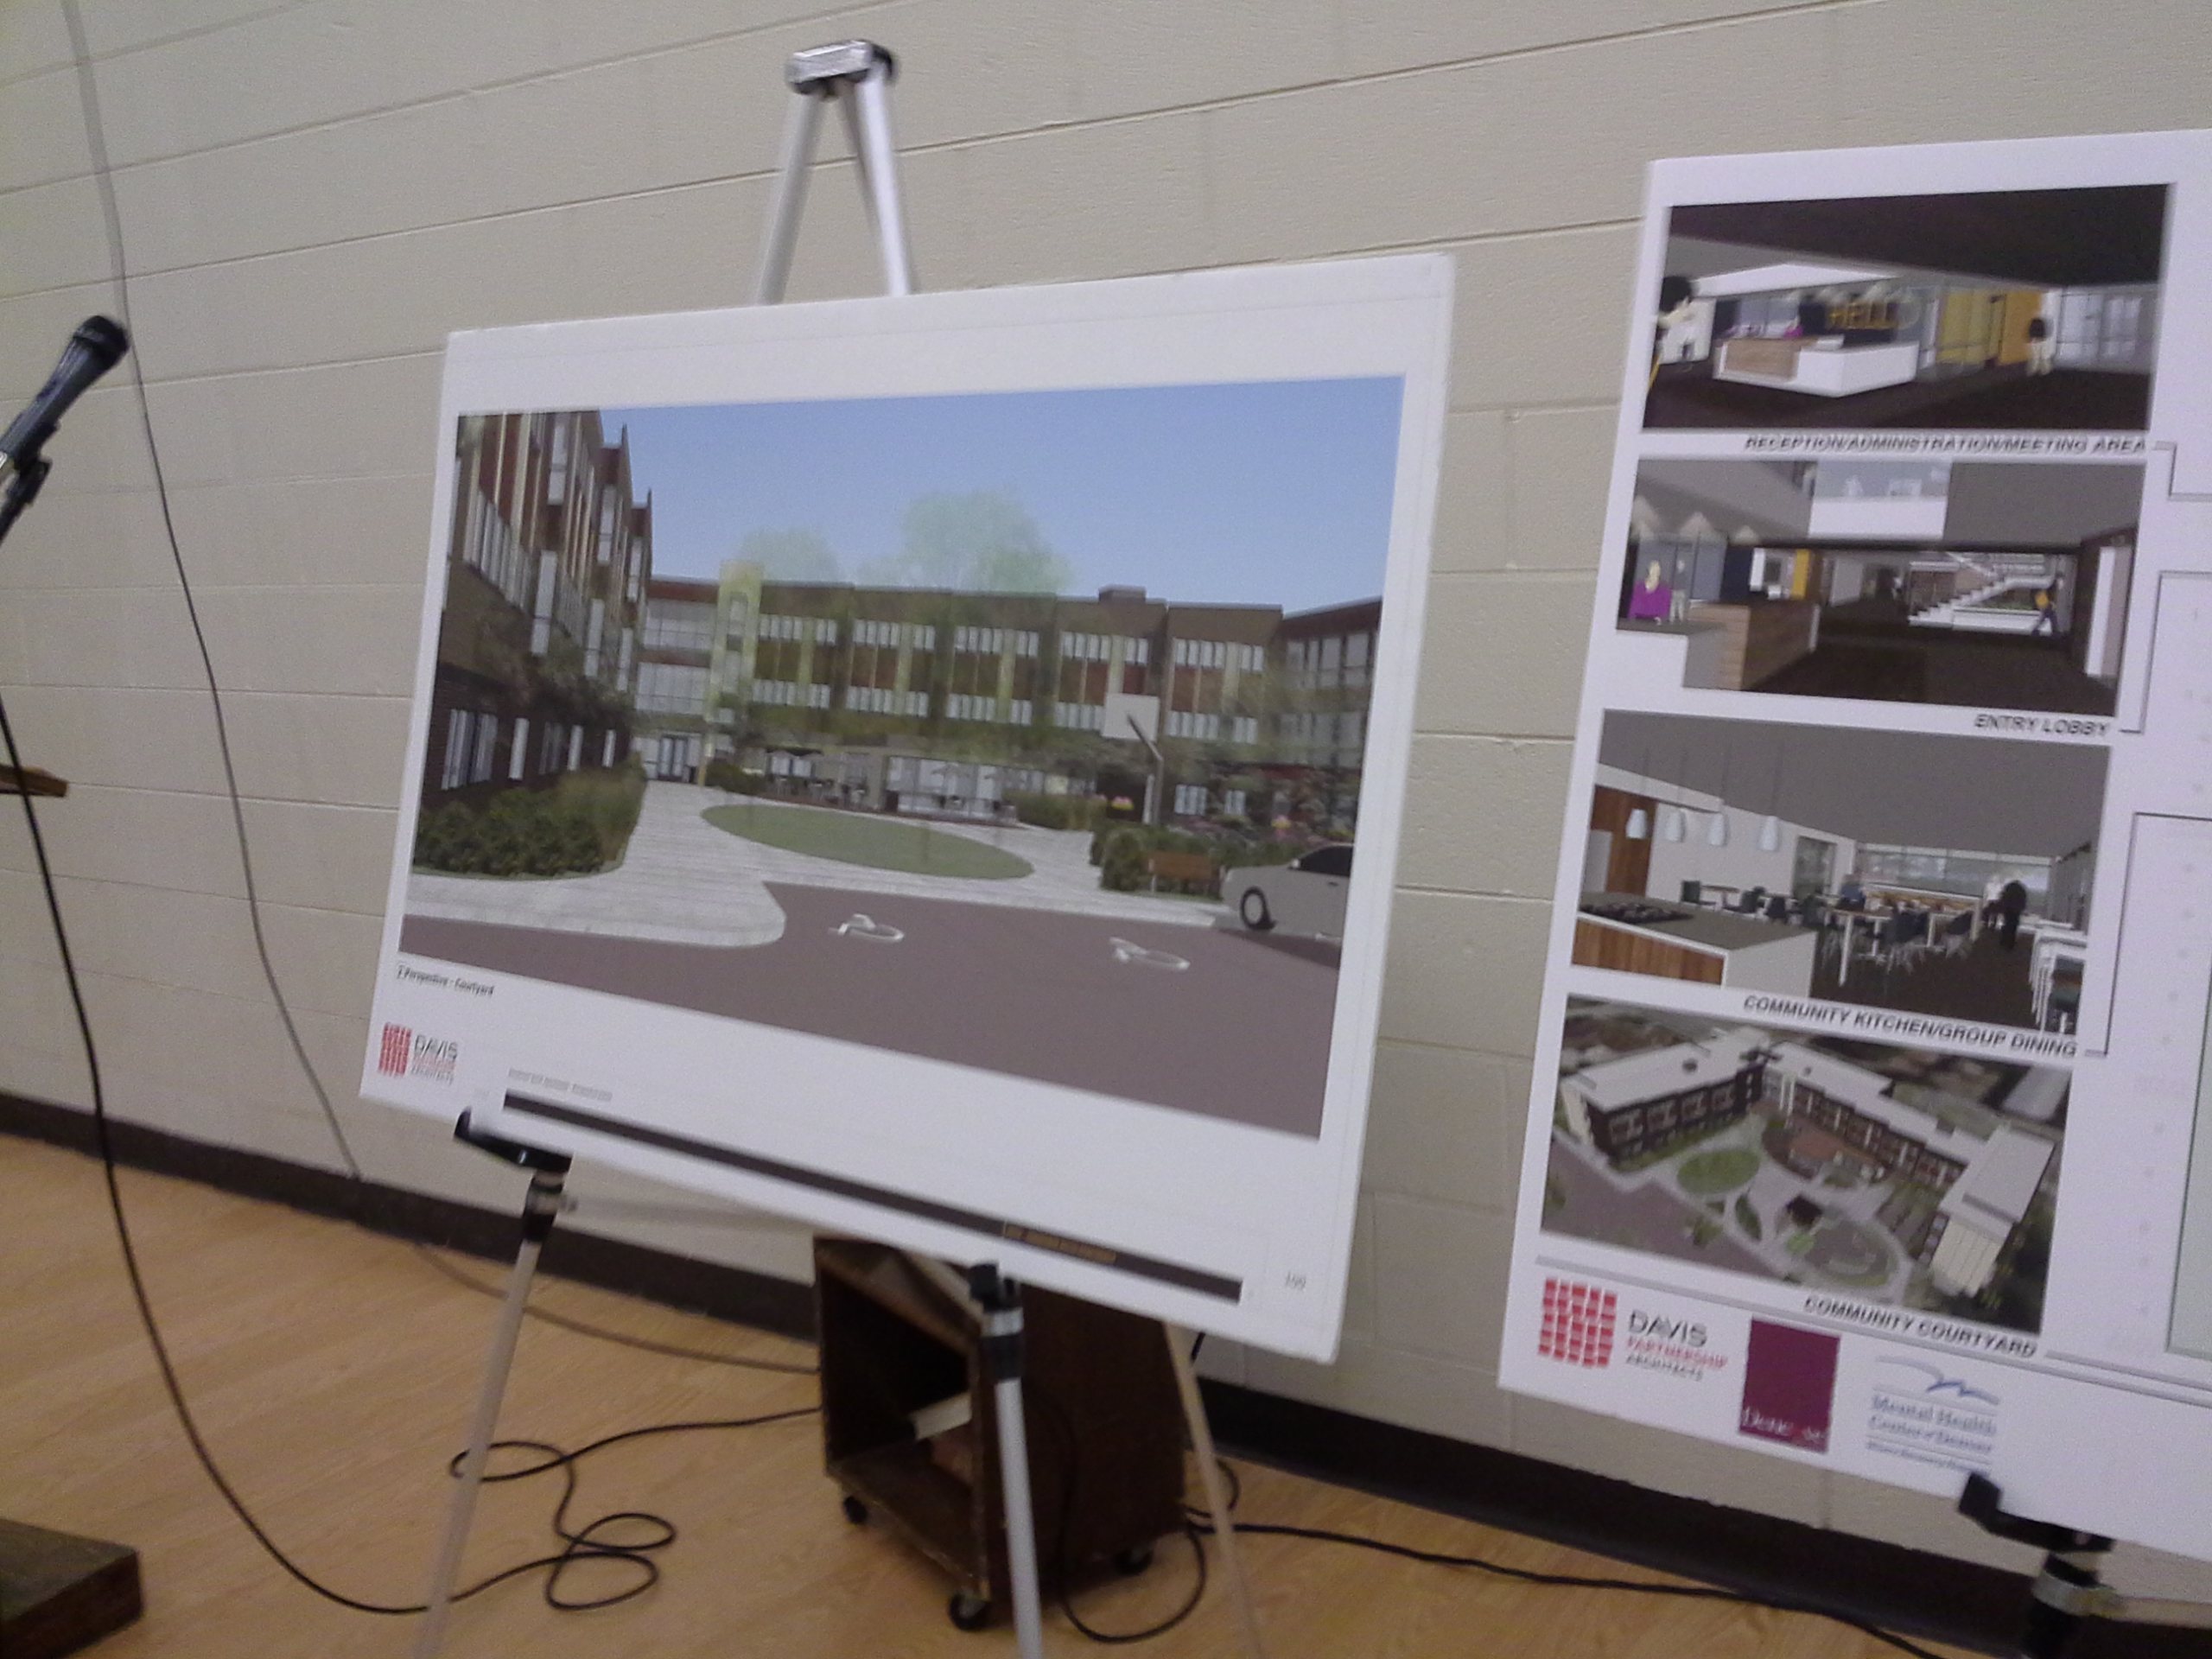 Two easels showing design renderings of the Sanderson Apartments displayed at the Ruby Hill Neighborhood Association Meeting on October 20, 2015